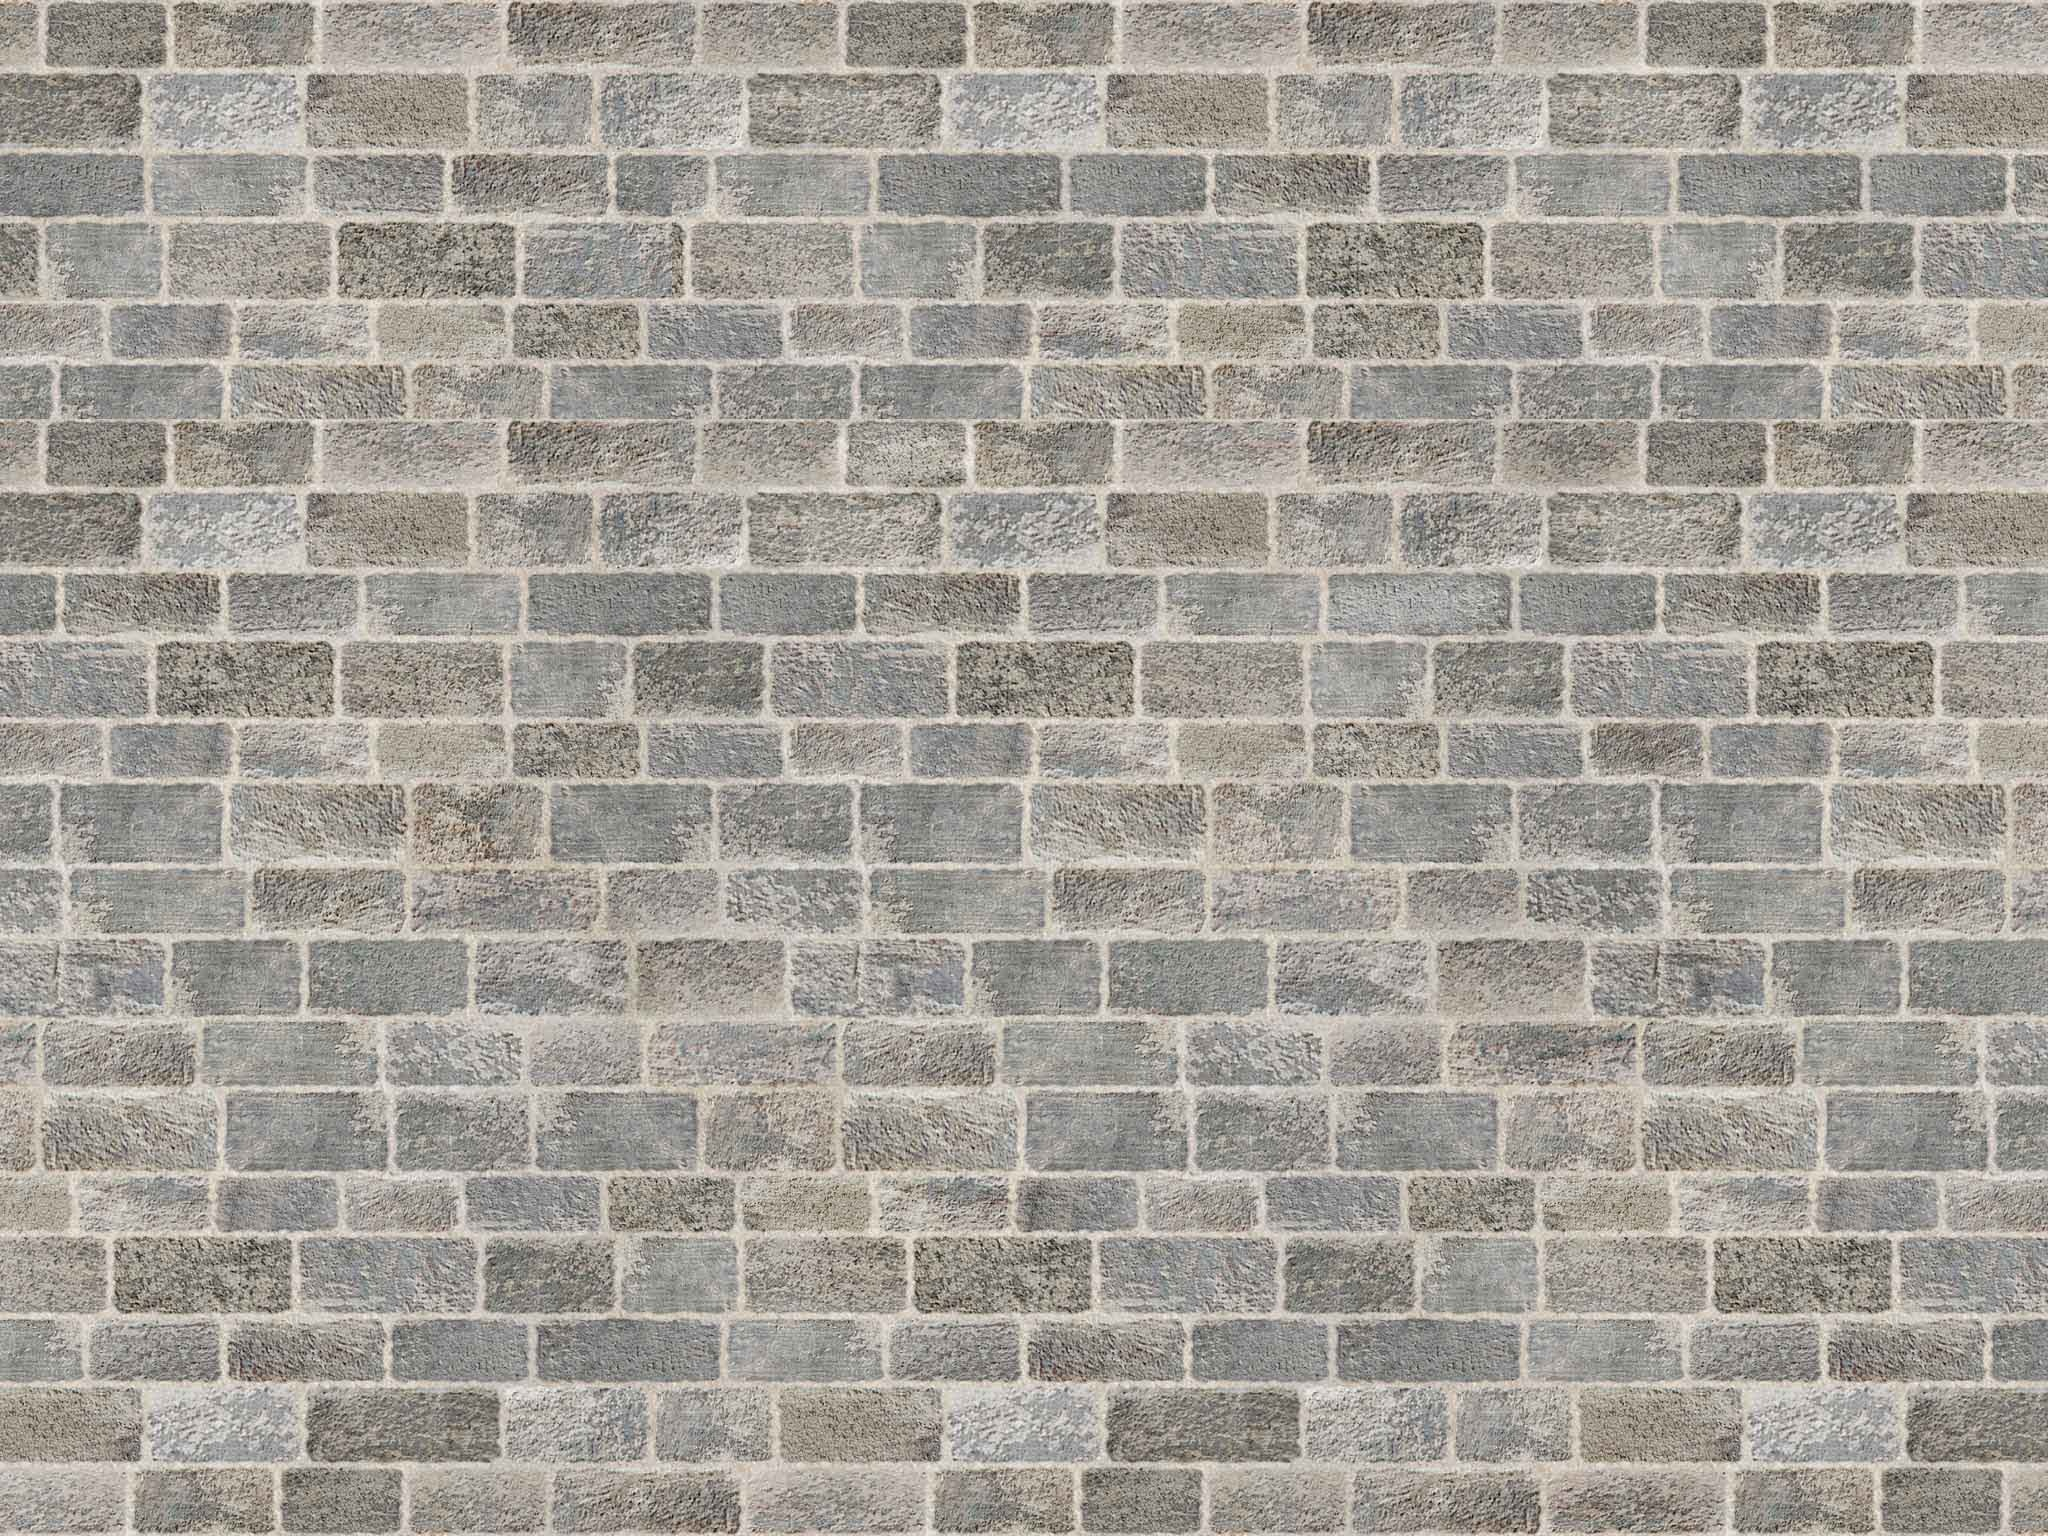 Wall Bricks. Wall Pictures   Pexels   Free Stock Photos